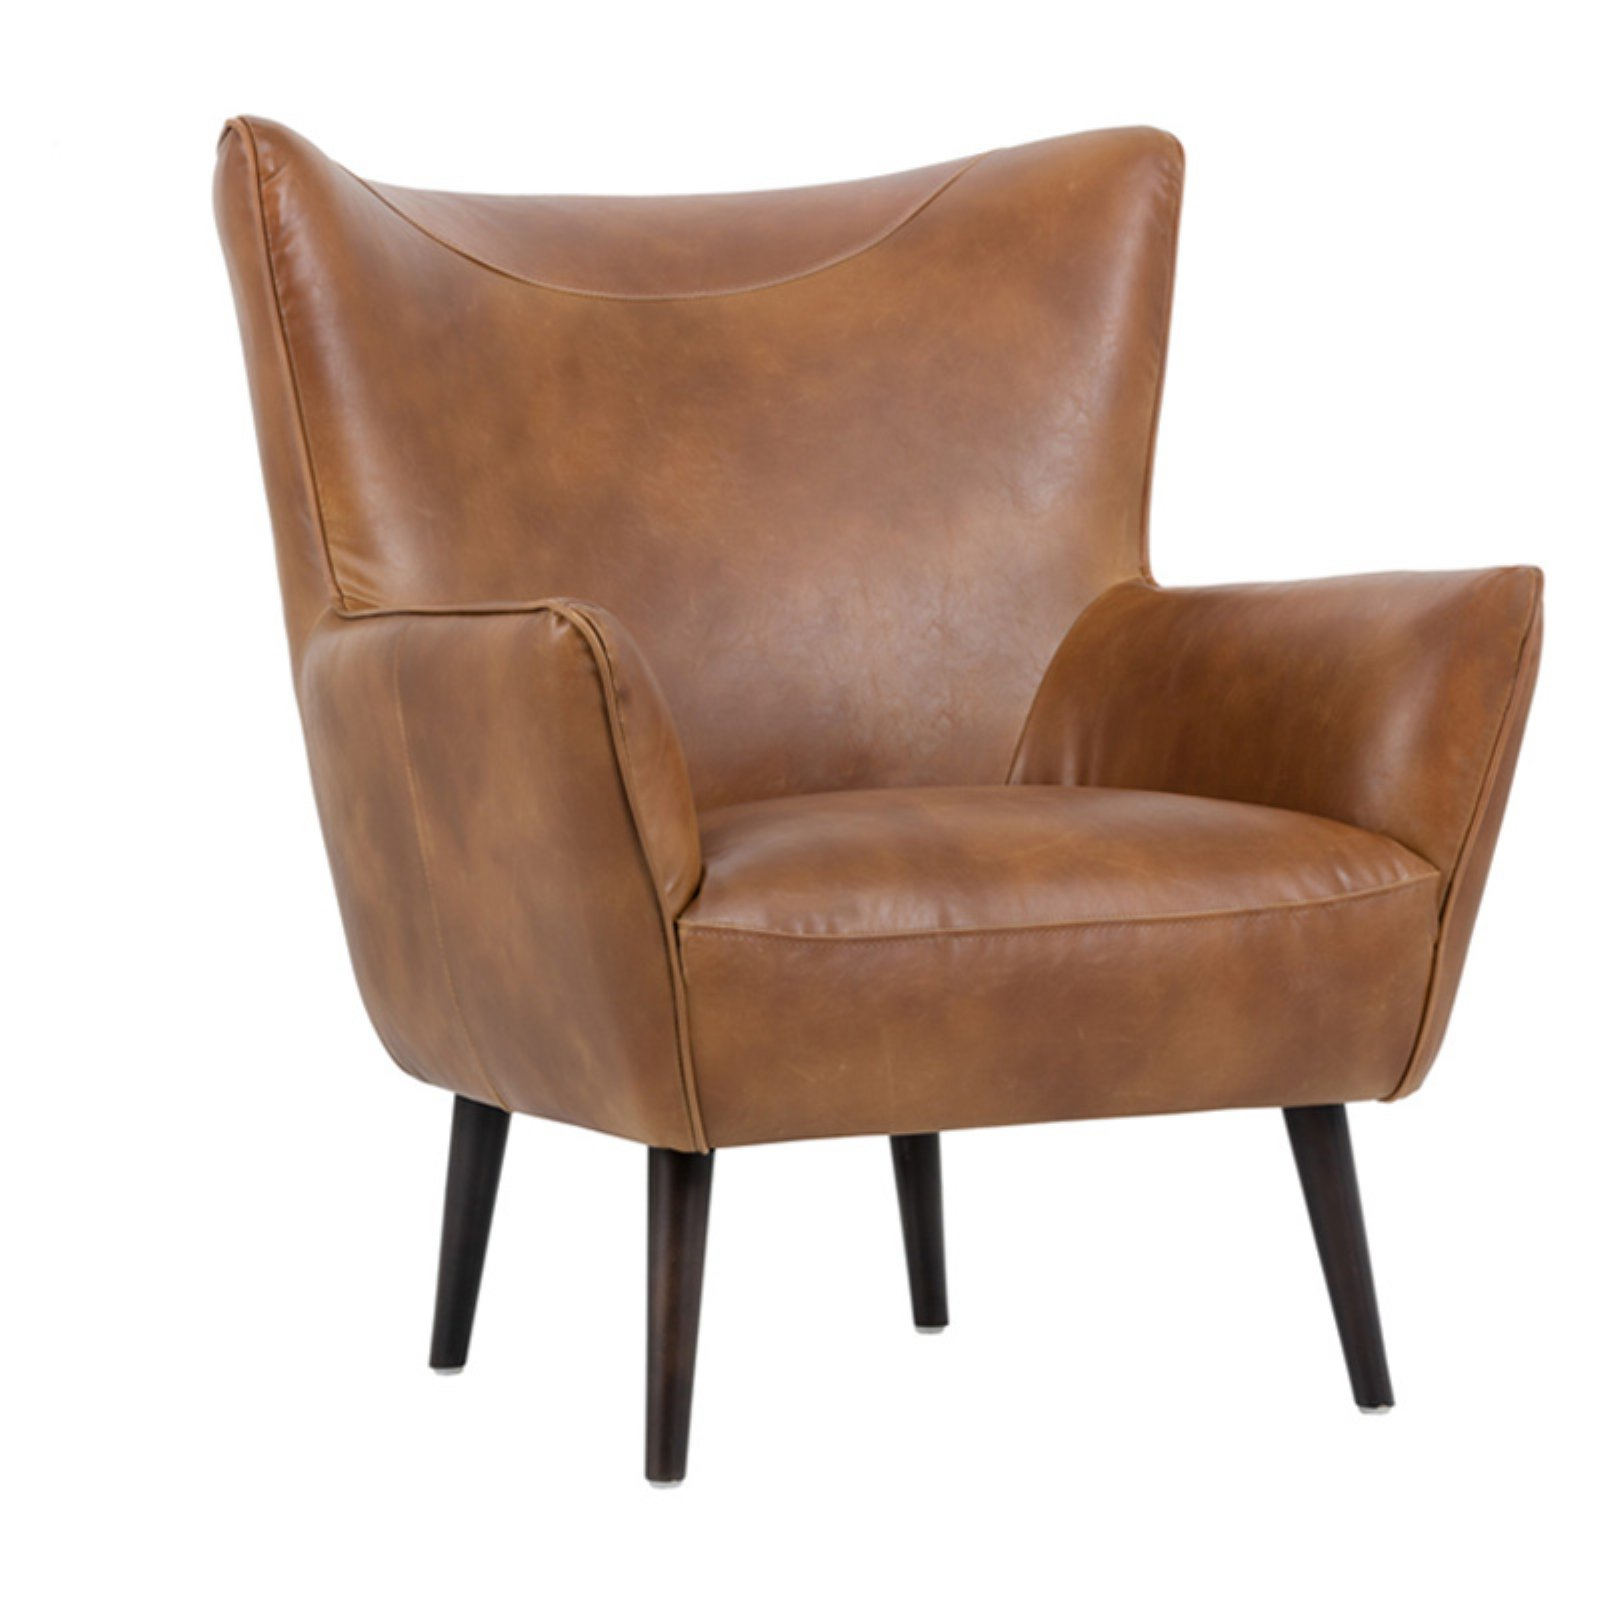 Sunpan Luther Accent Chair Tobacco Tan Leather Accent Chair